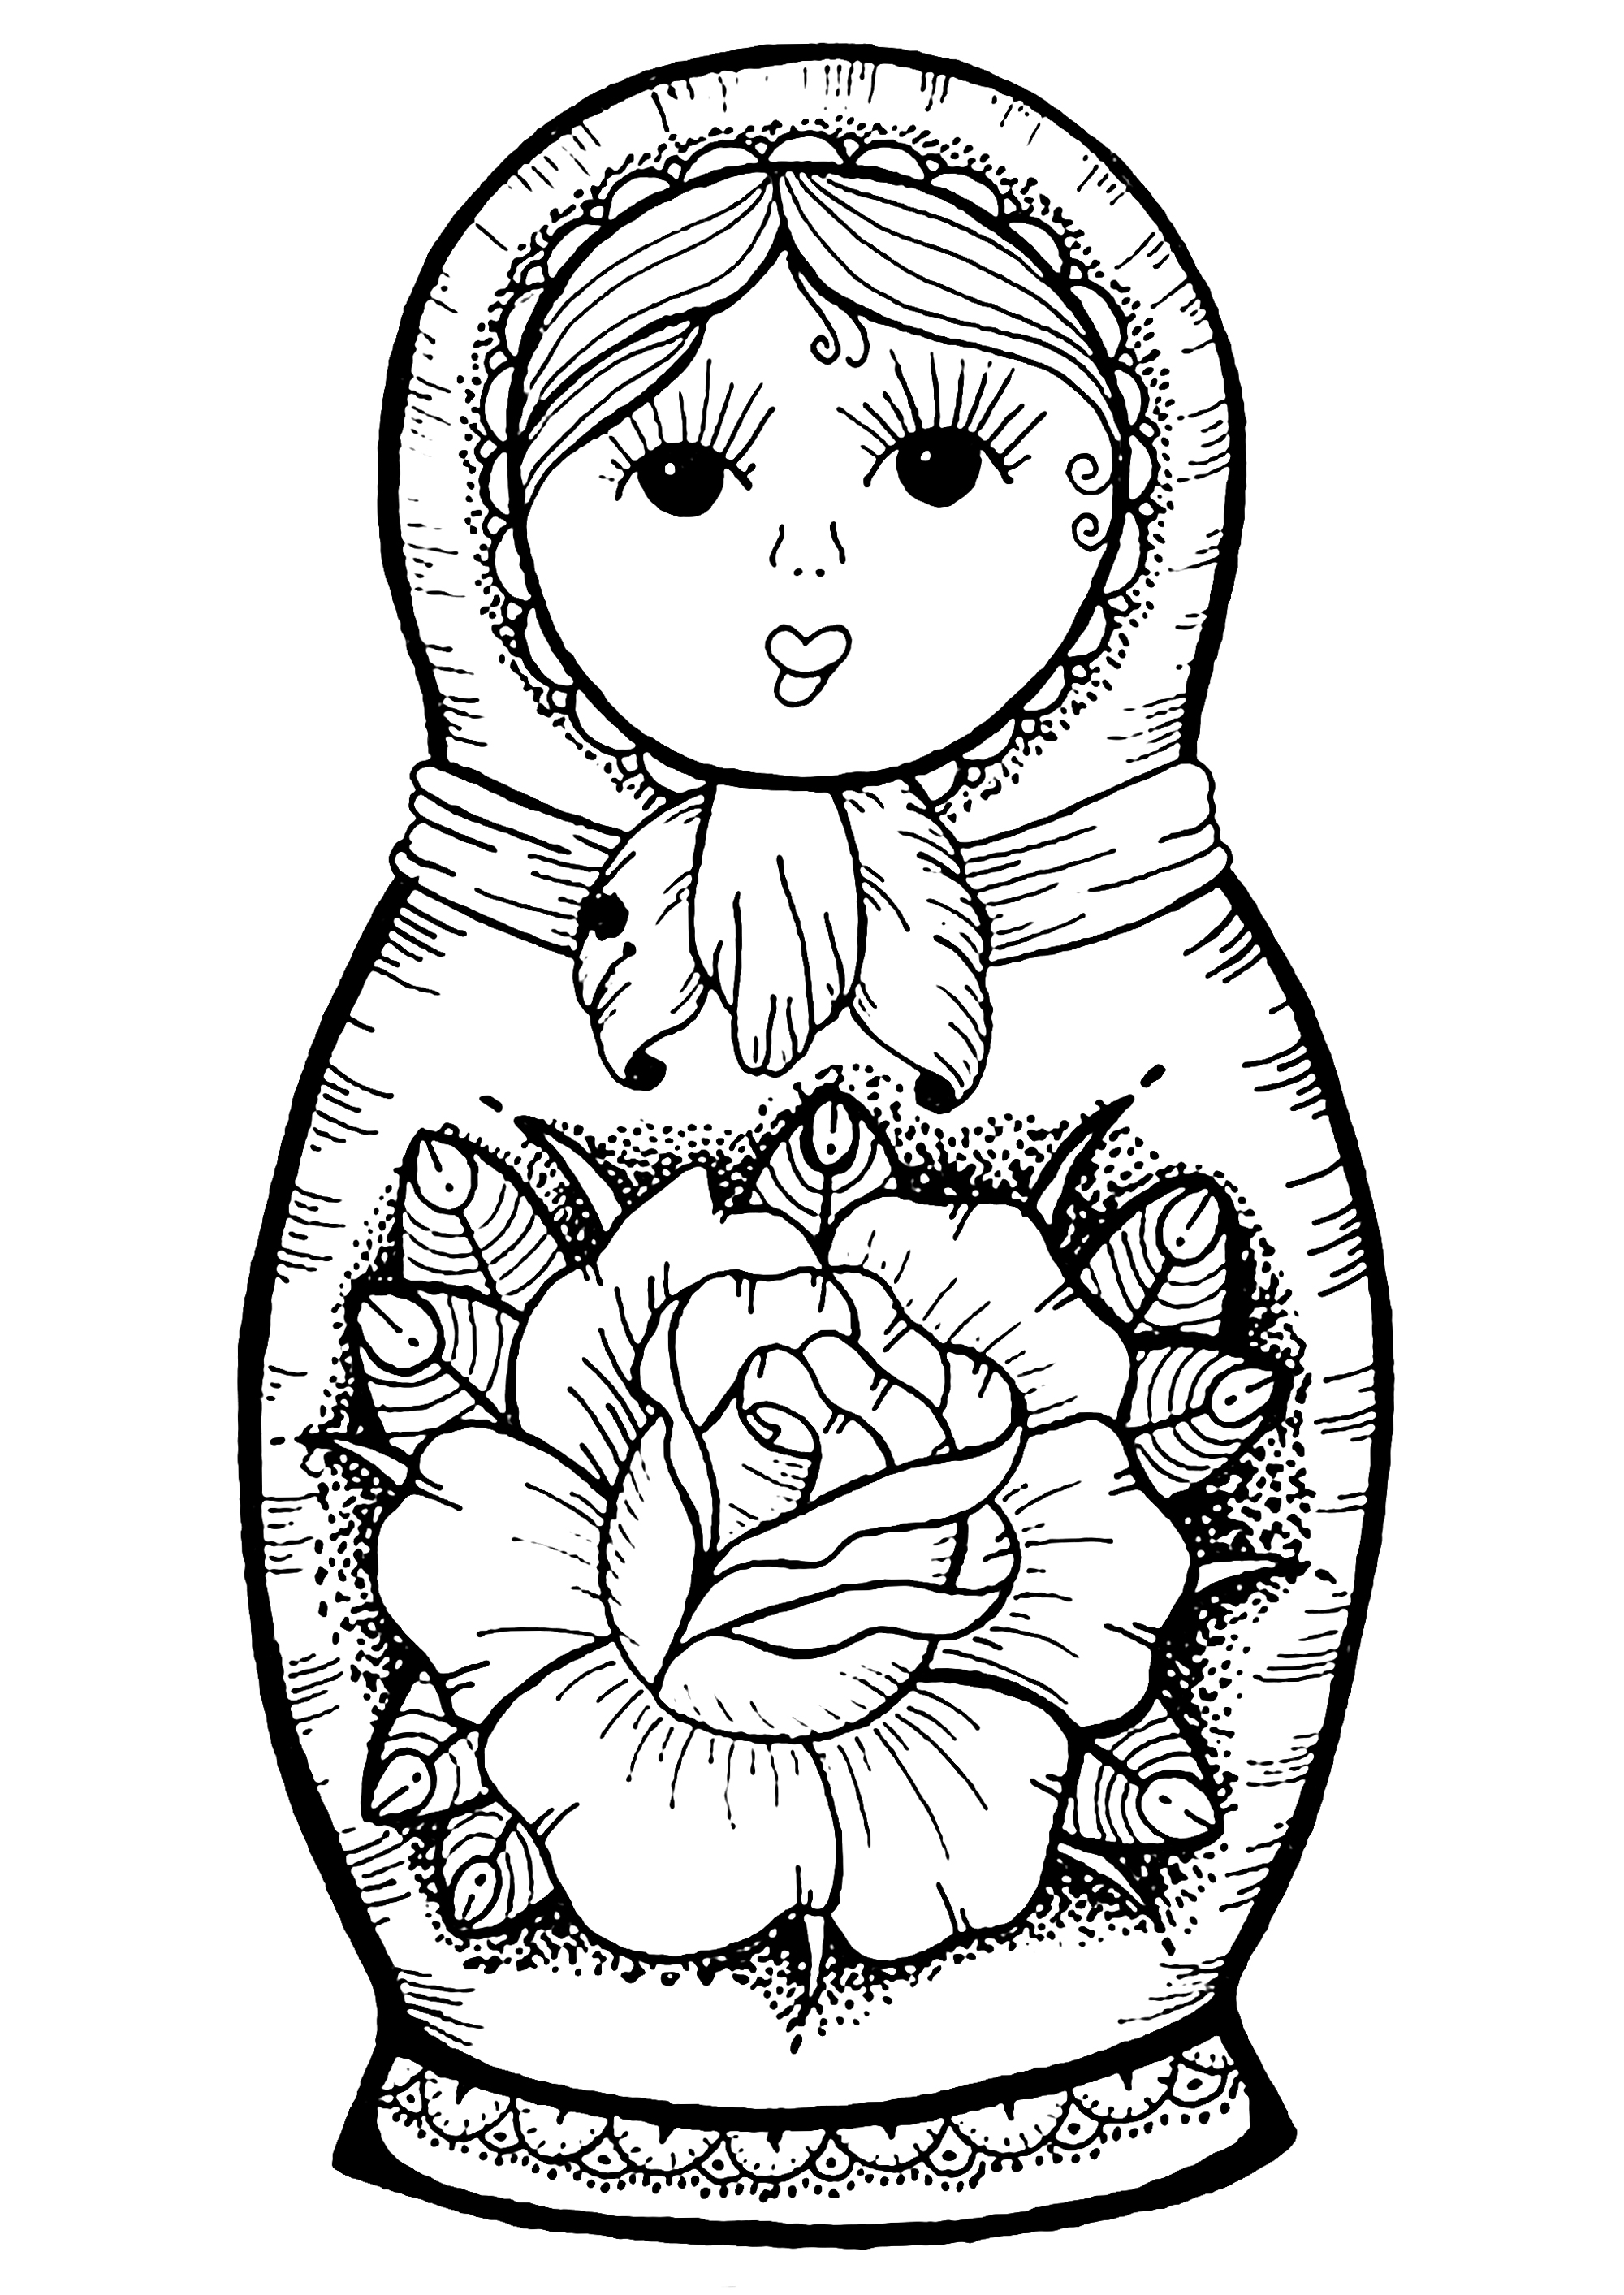 Color this hand drawn russian doll